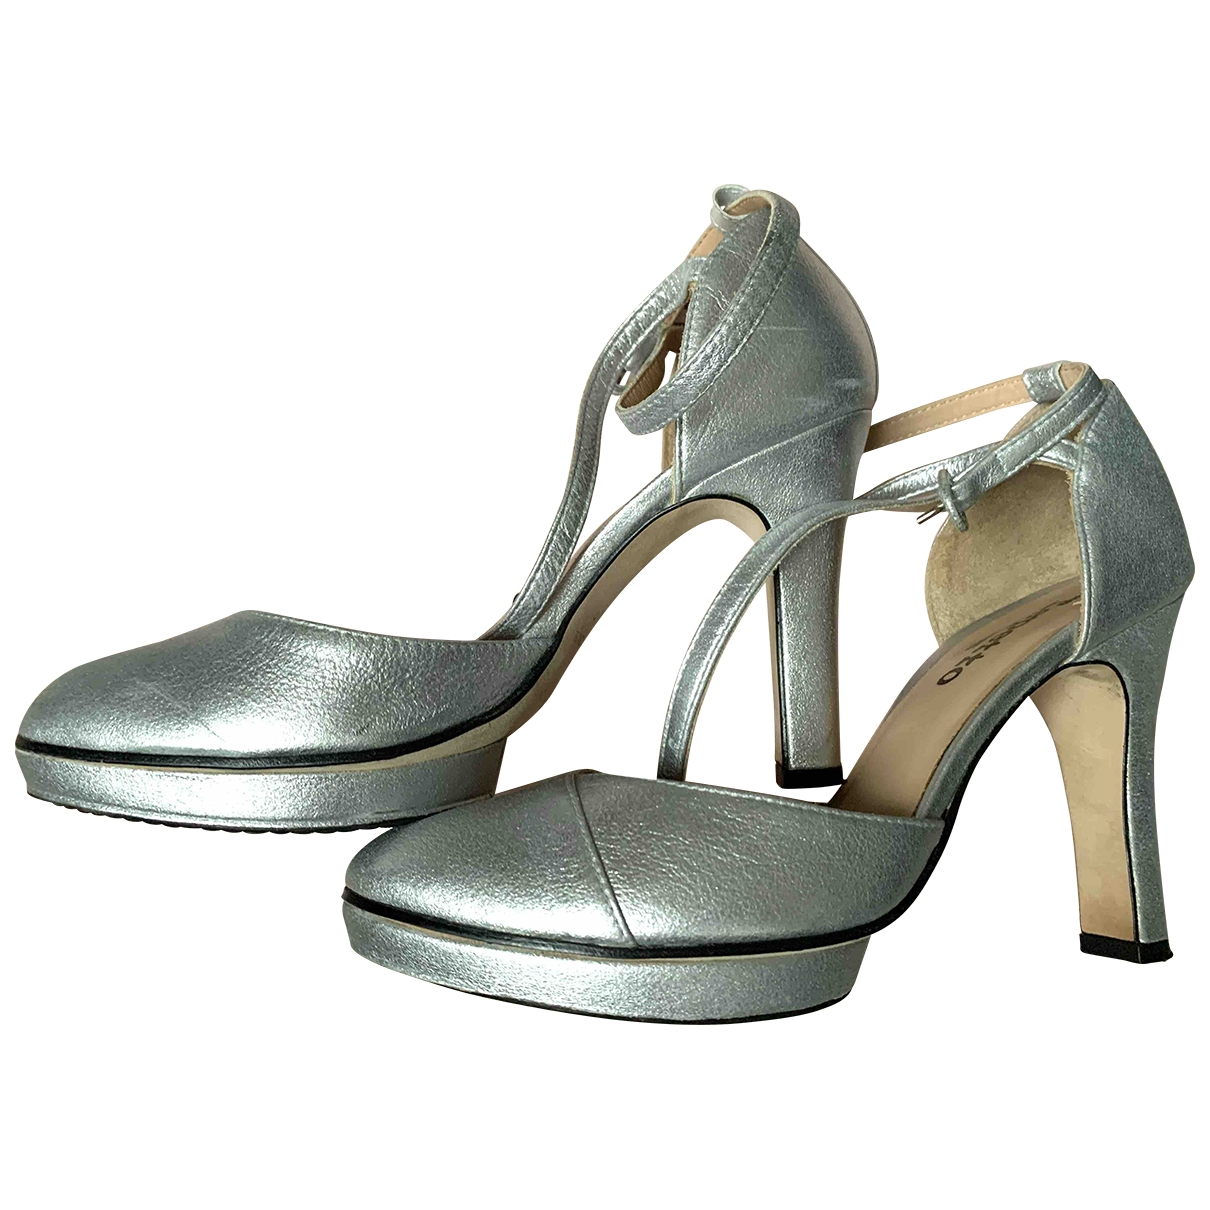 Repetto \N Silver Leather Sandals for Women 39 EU